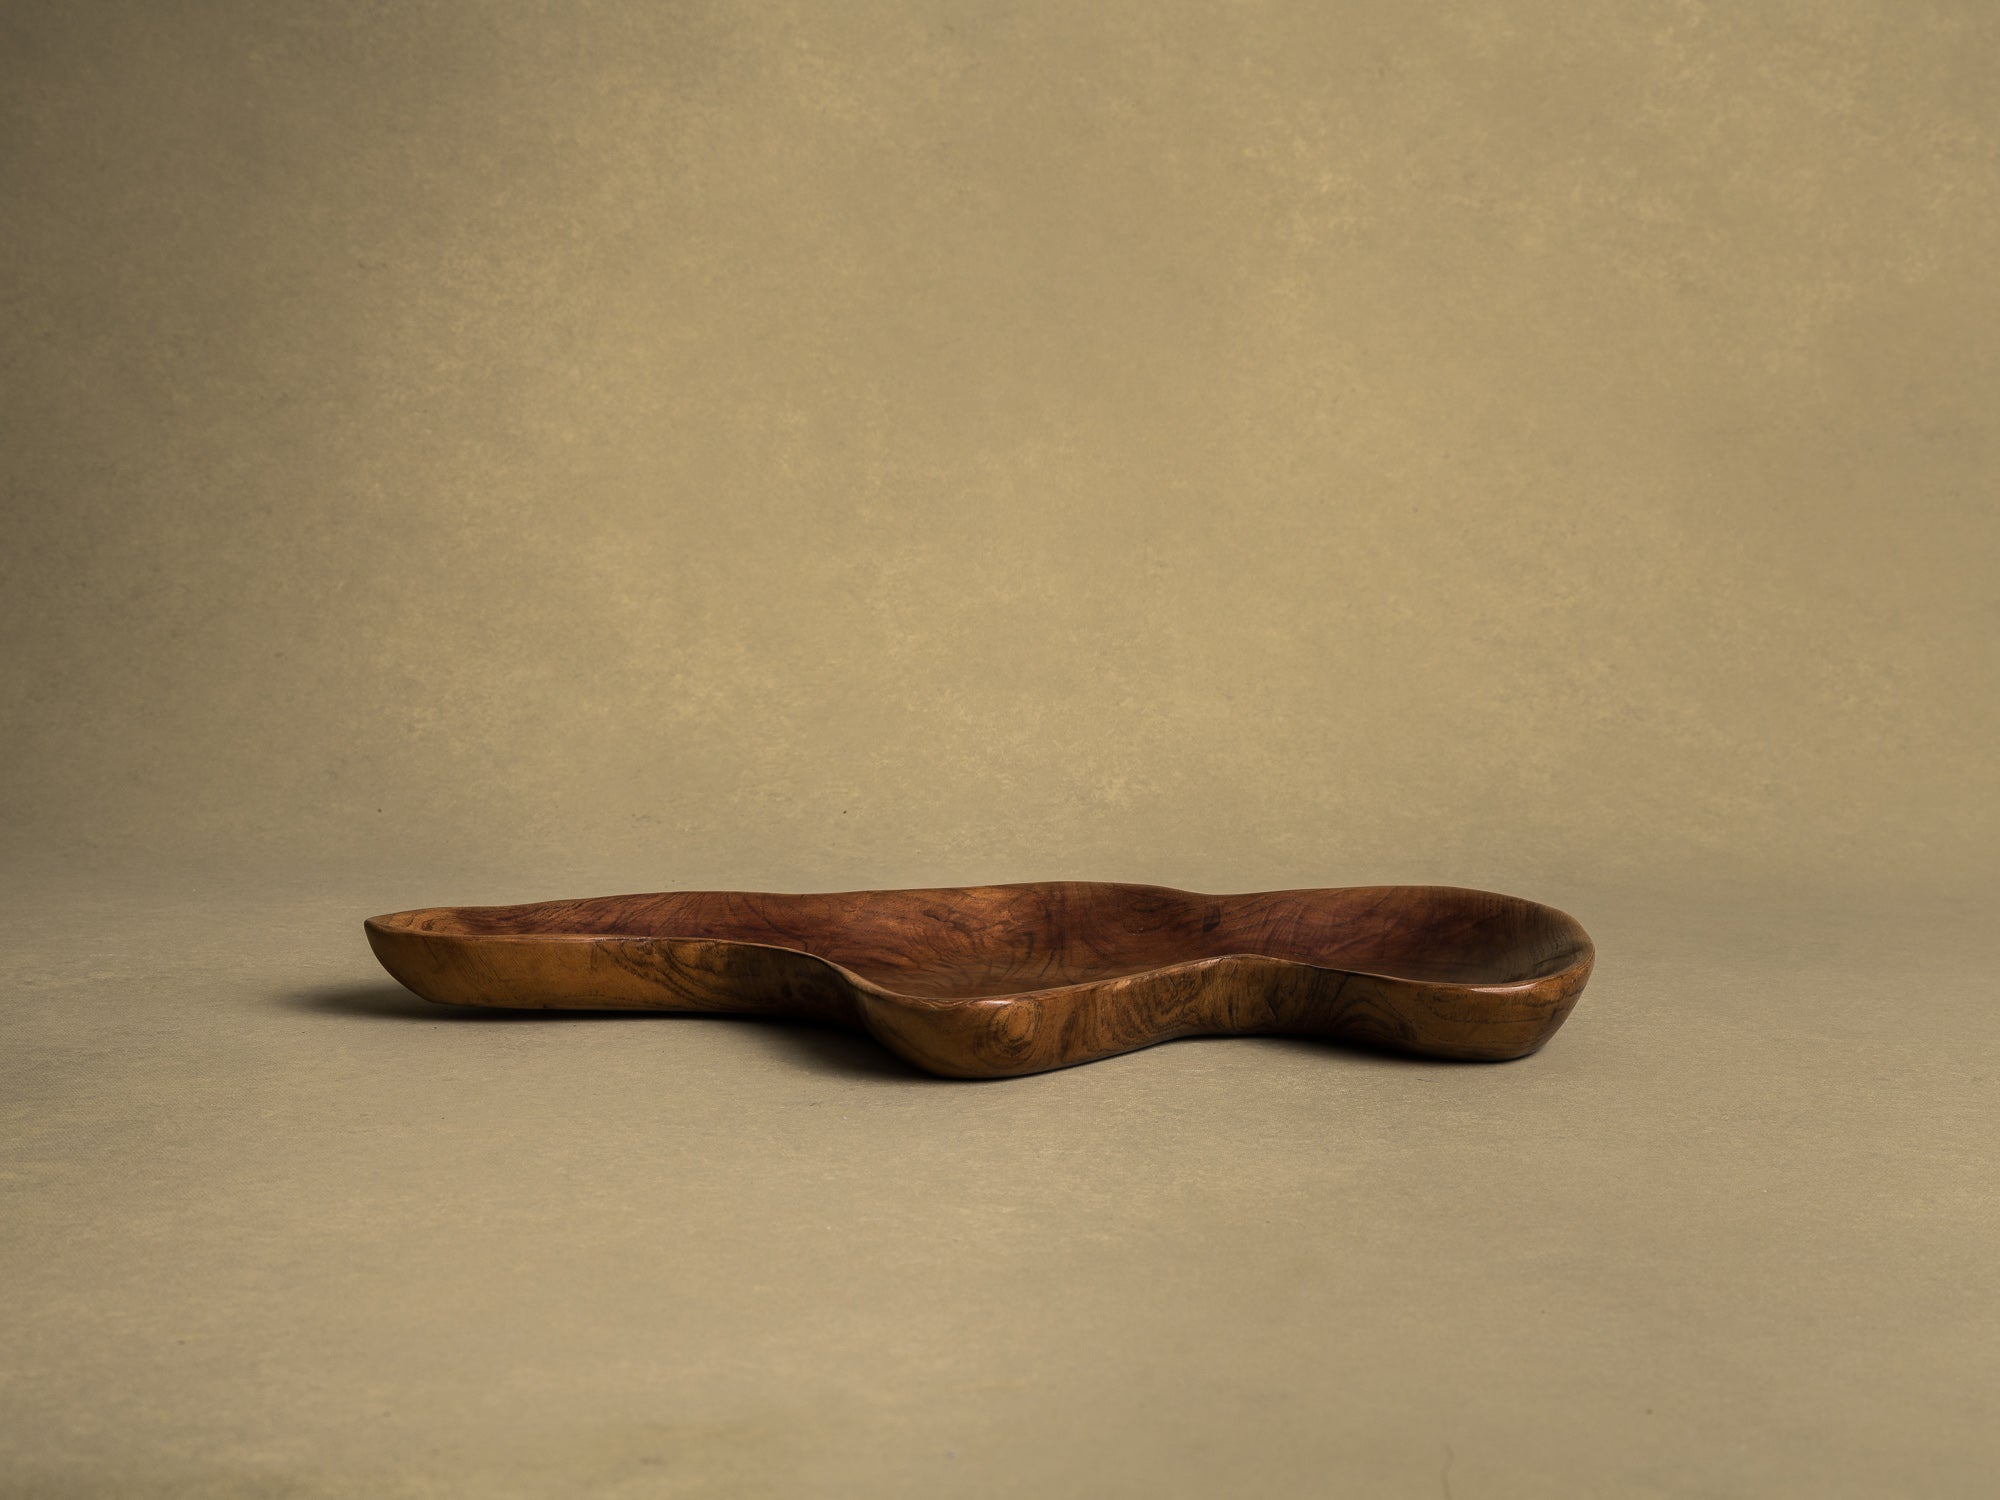 Coupe monoxyle de forme libre en bois exotique, France (vers 1950)..Free form biomorphic wooden bowl, France (circa 1950)